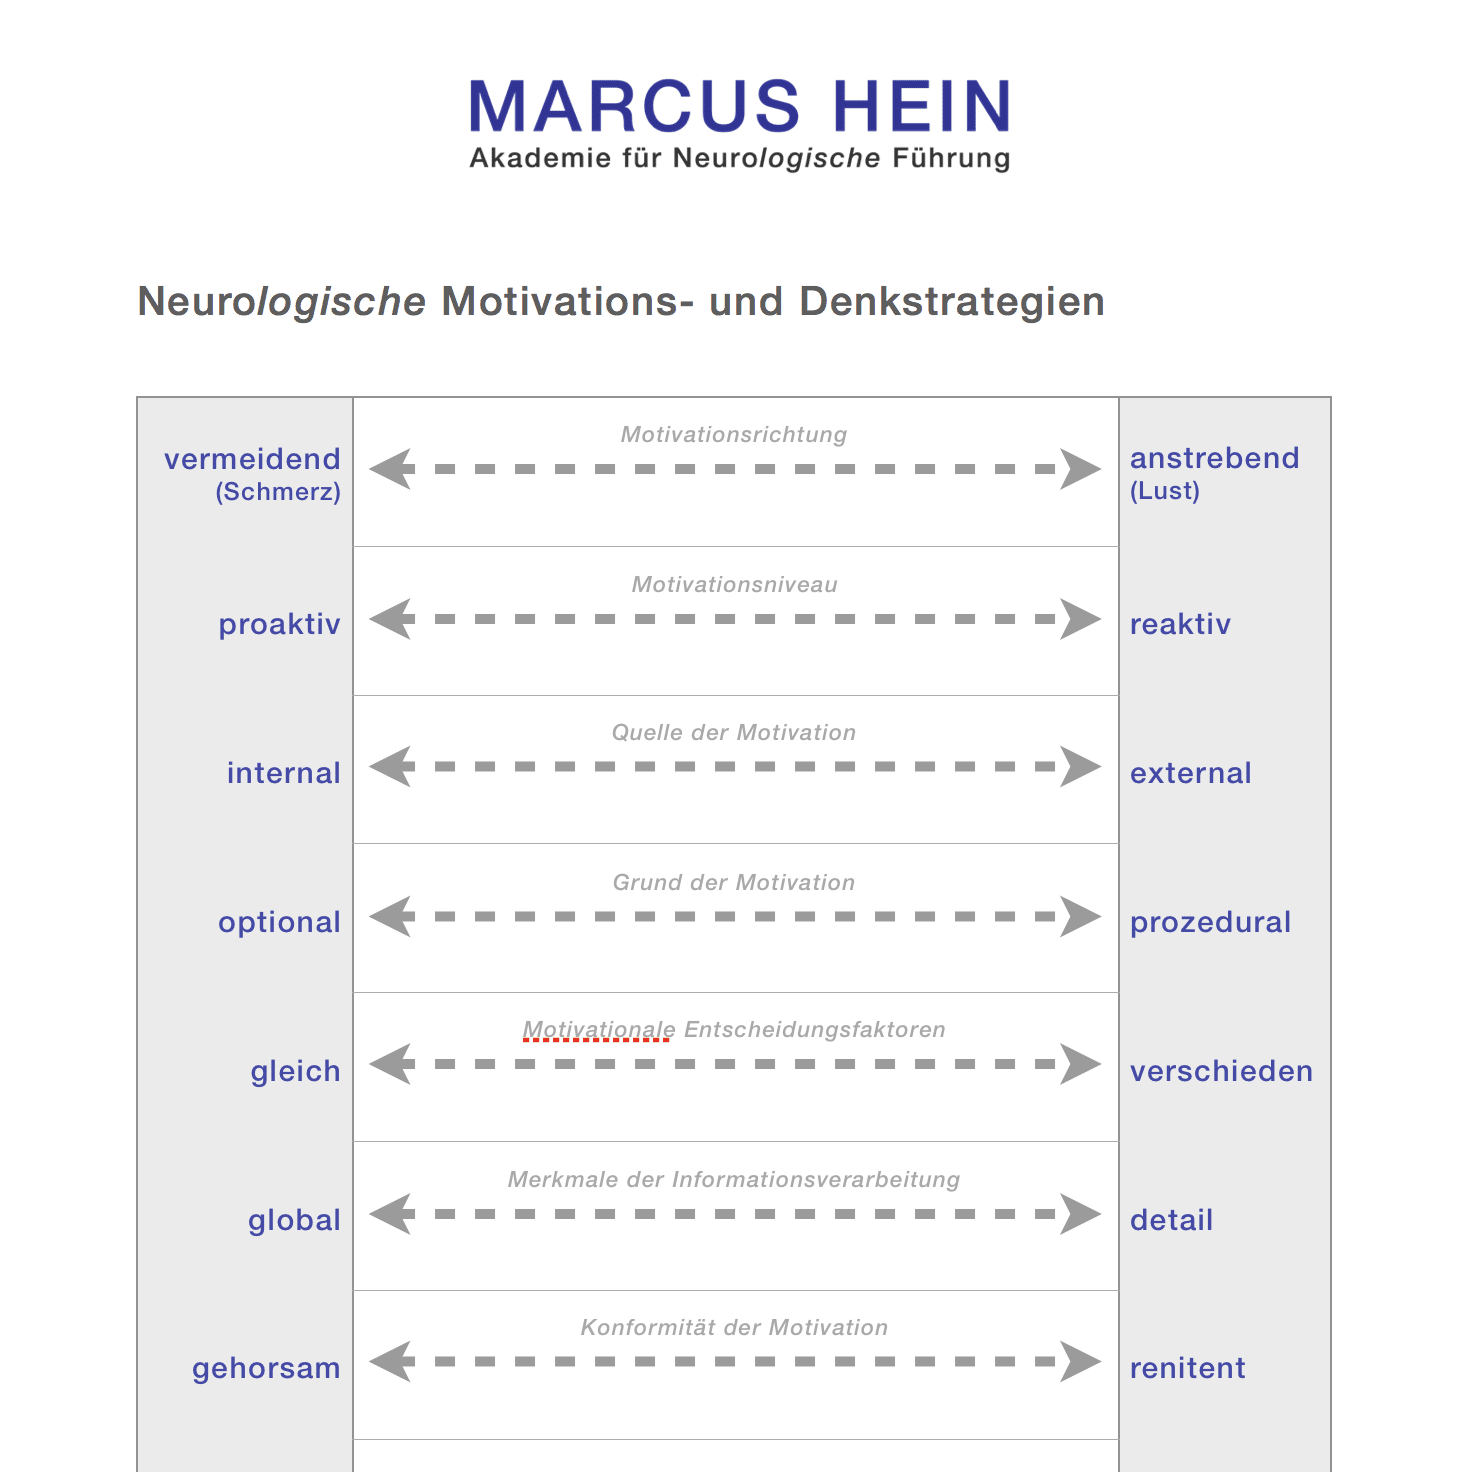 Neurologische Denk- und Motivationsstrategien - MARCUS HEIN